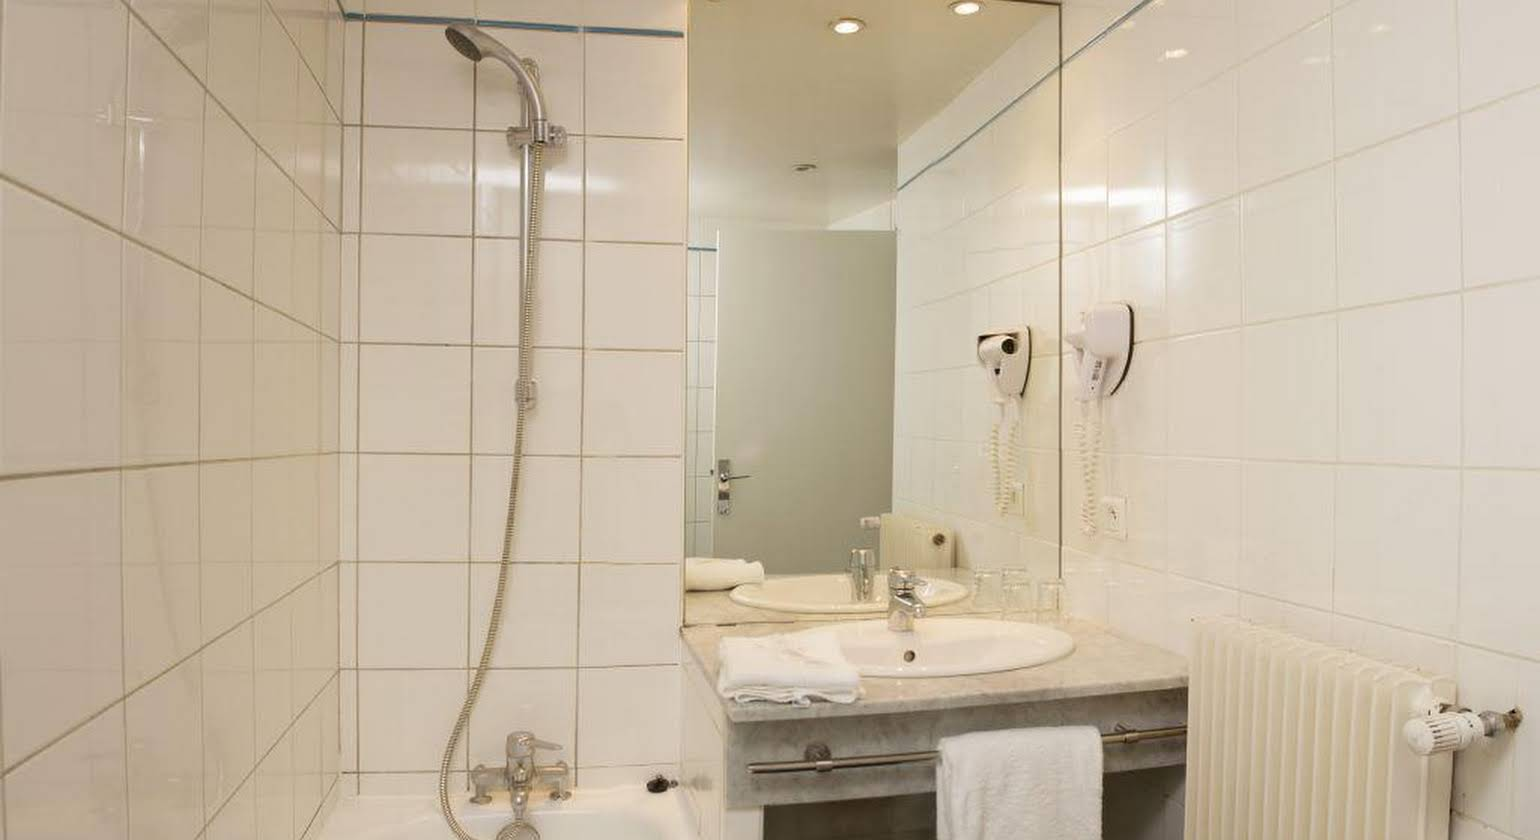 Hotel Ours Blanc - Place Victor Hugo